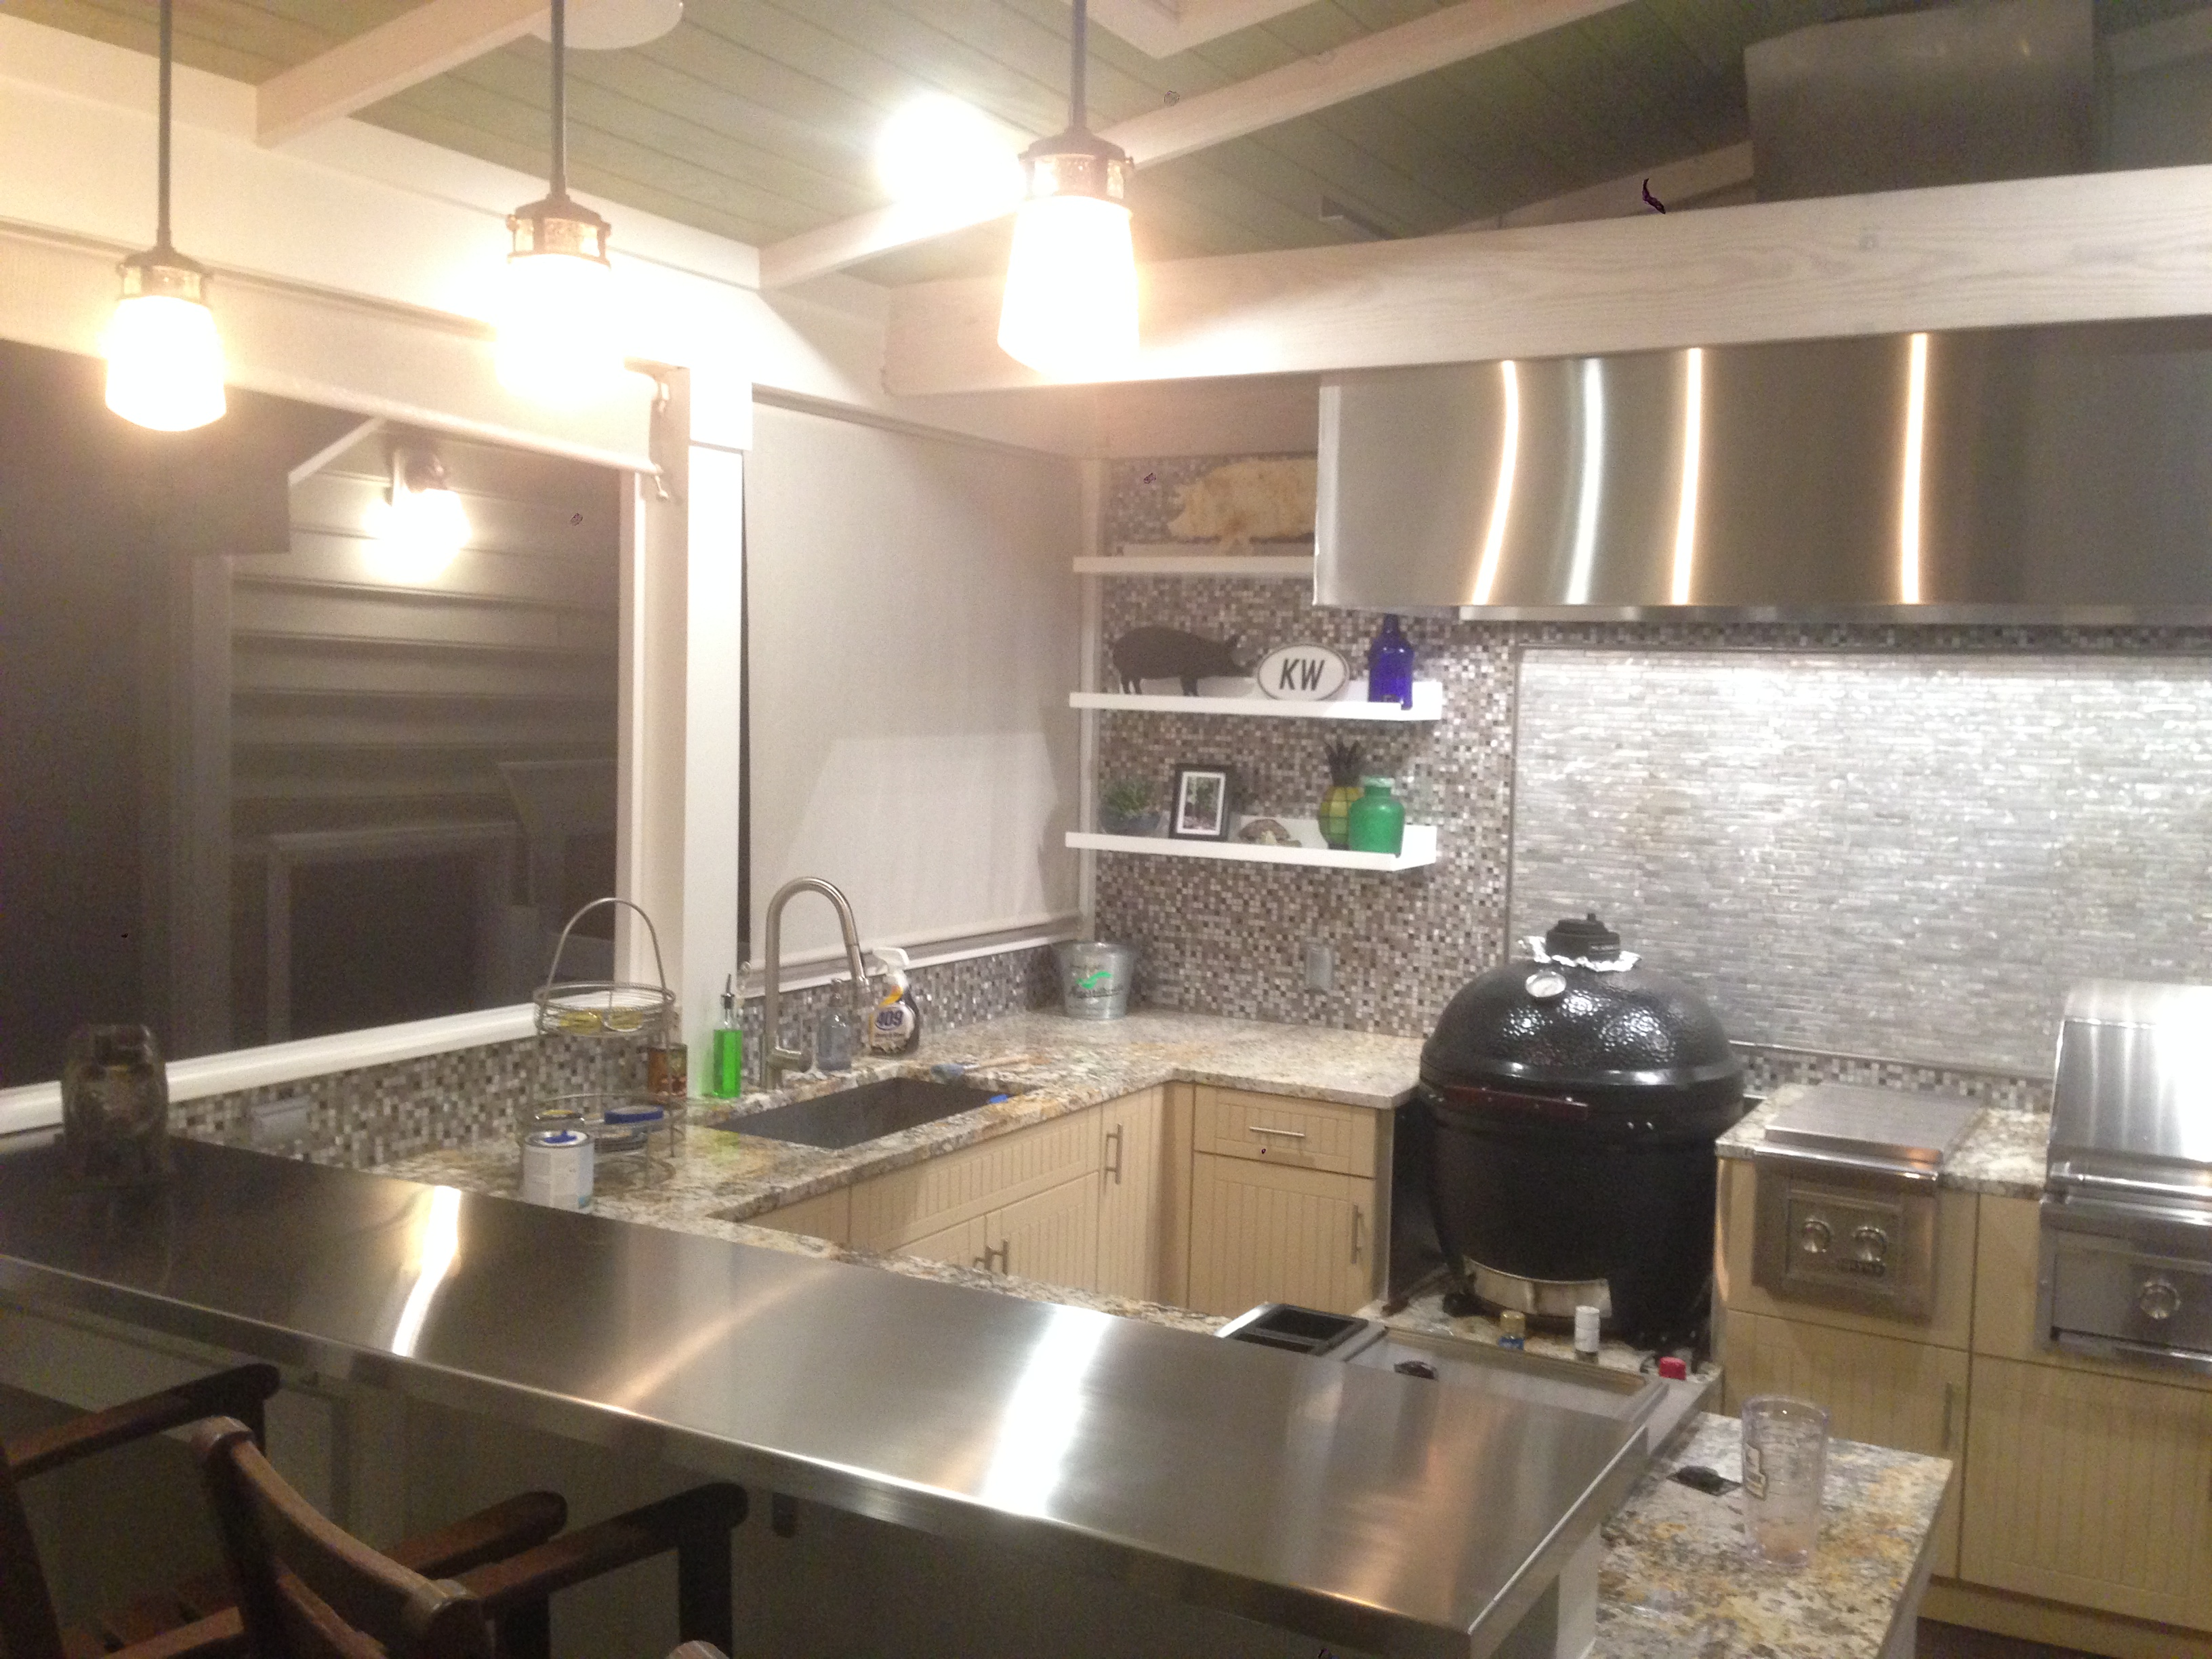 Ordinaire Stainless Steel Countertops Vs Granite And Others.... Image.jpeg